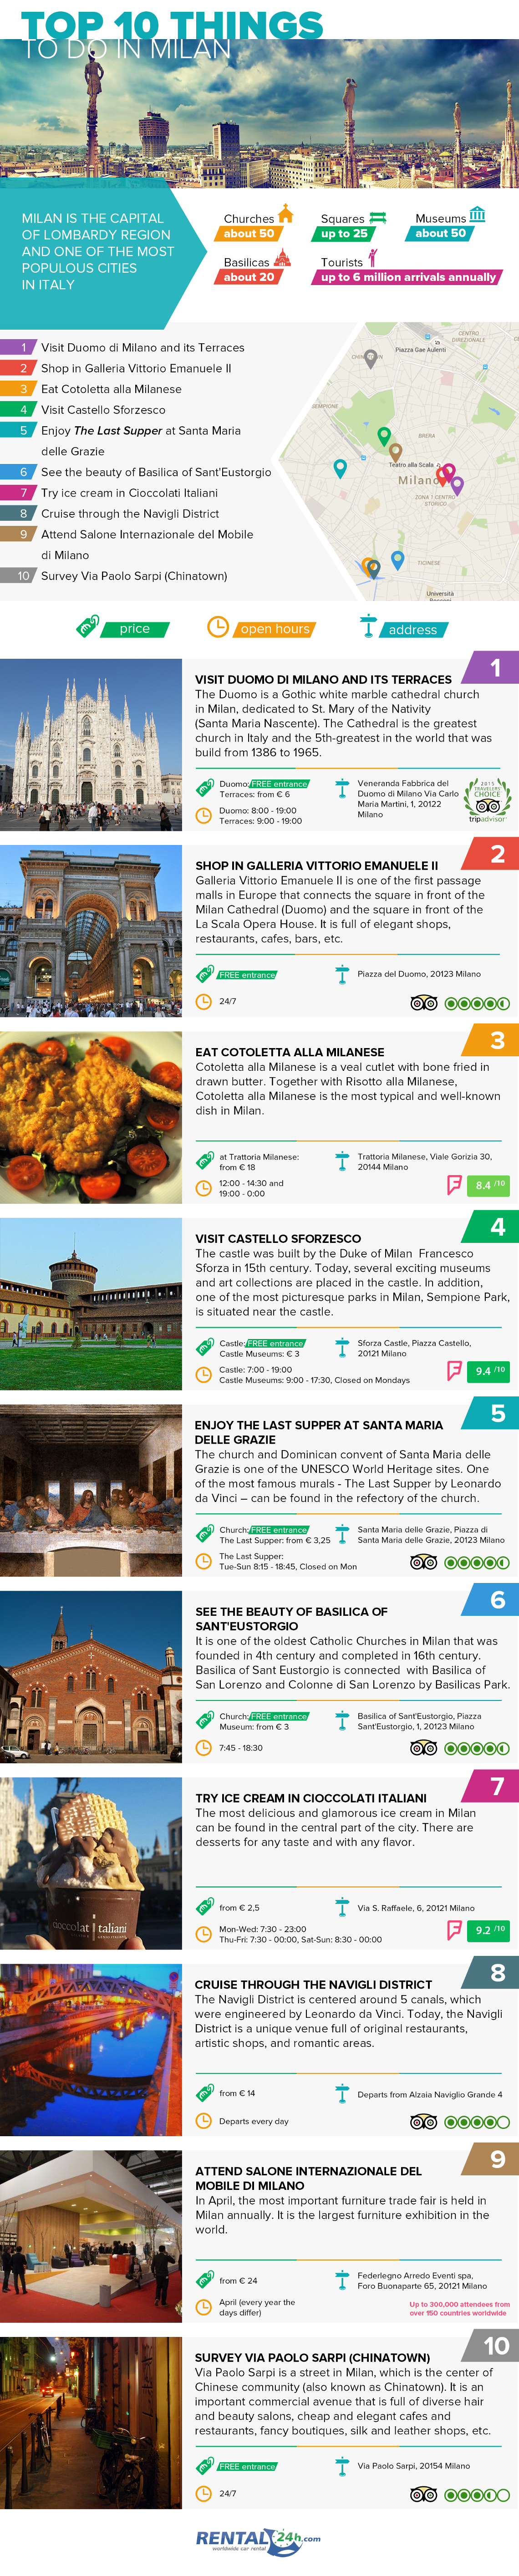 Top 10 Things to Experience in Milan #Infographic